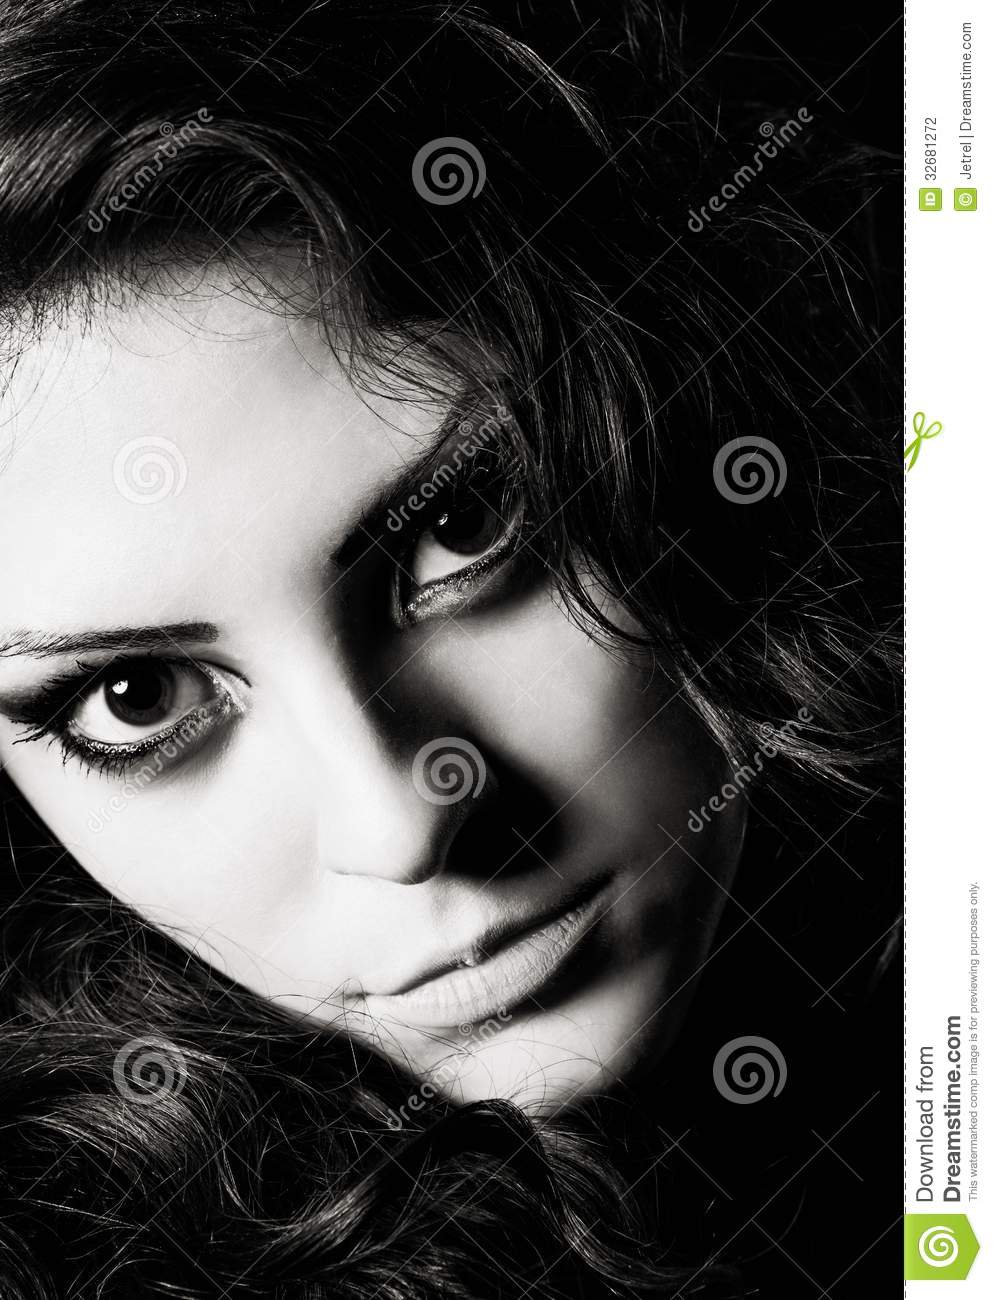 Closeup Dramatic Portrait Of Beautiful Young Girl Black And White Stock Photography -6583